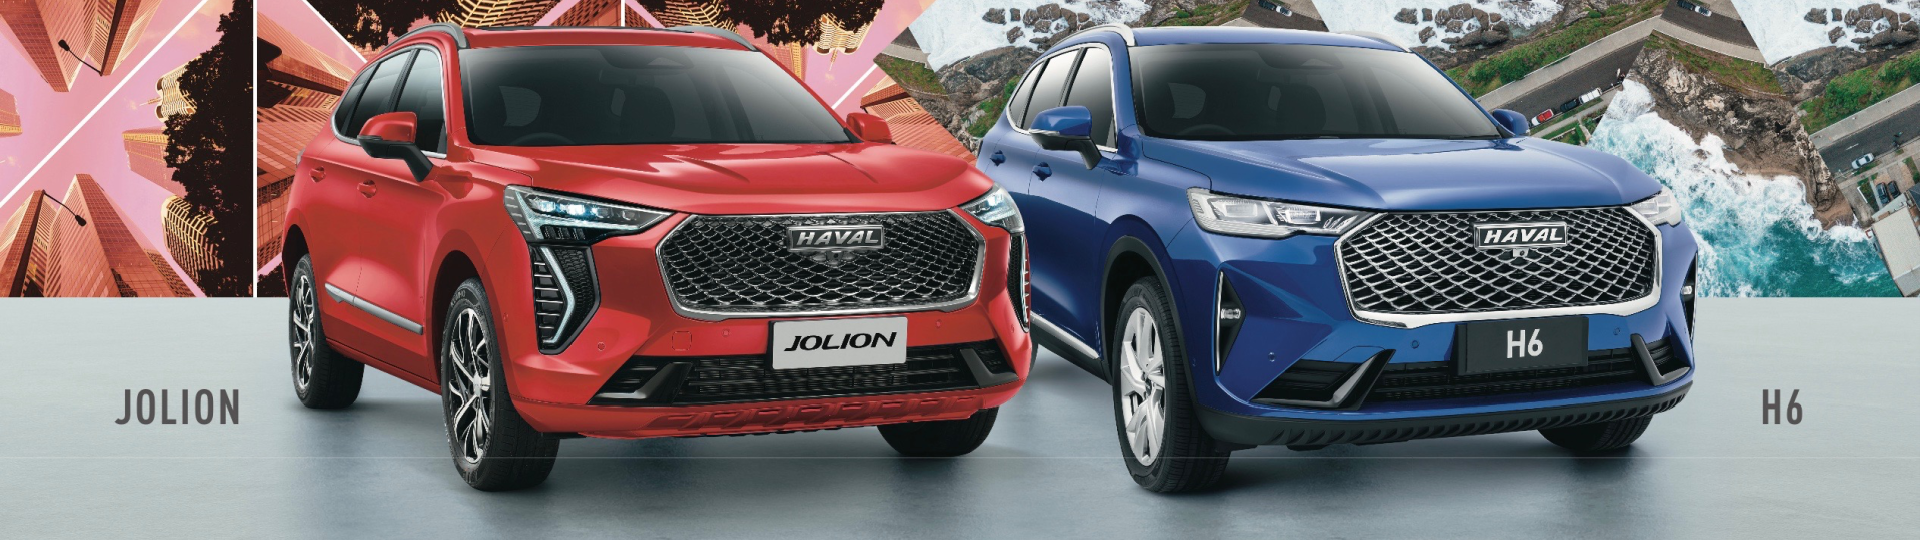 All-New Haval Jolion and H6 SUV for sale in Perth